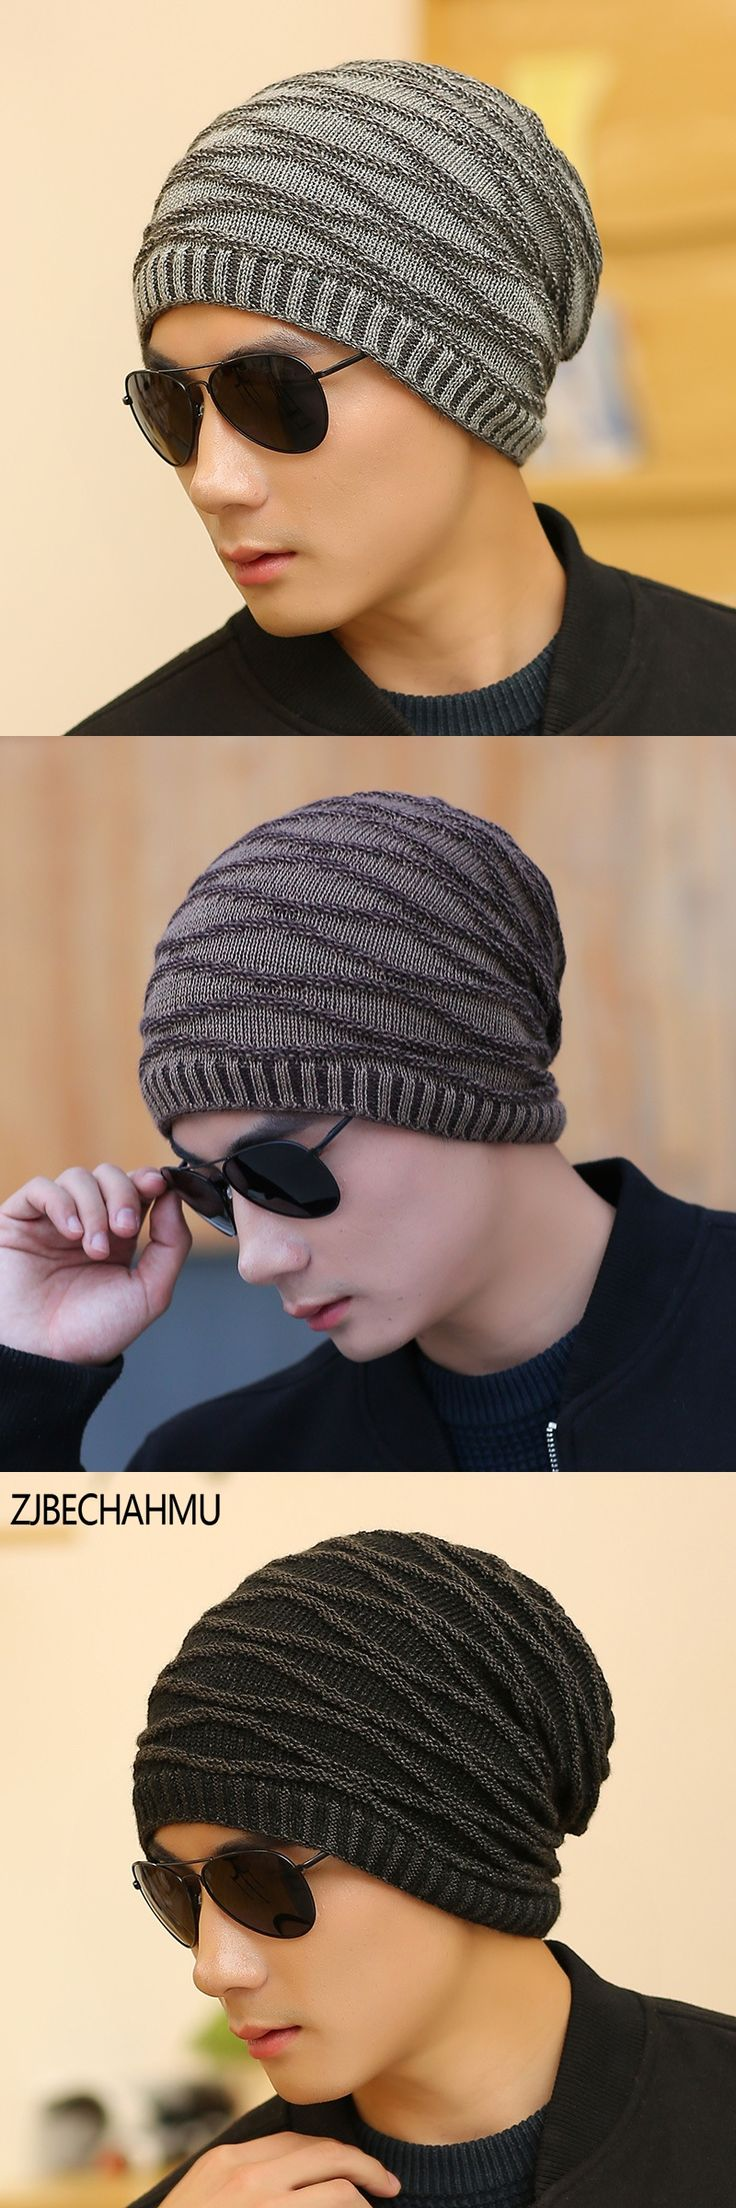 Casual Fashionable  Mens Winter Hat Beanie Hats Fur Warm Baggy Knitted Skullies Bonnet Ski Sports Adult Cap New Arrival Beanies